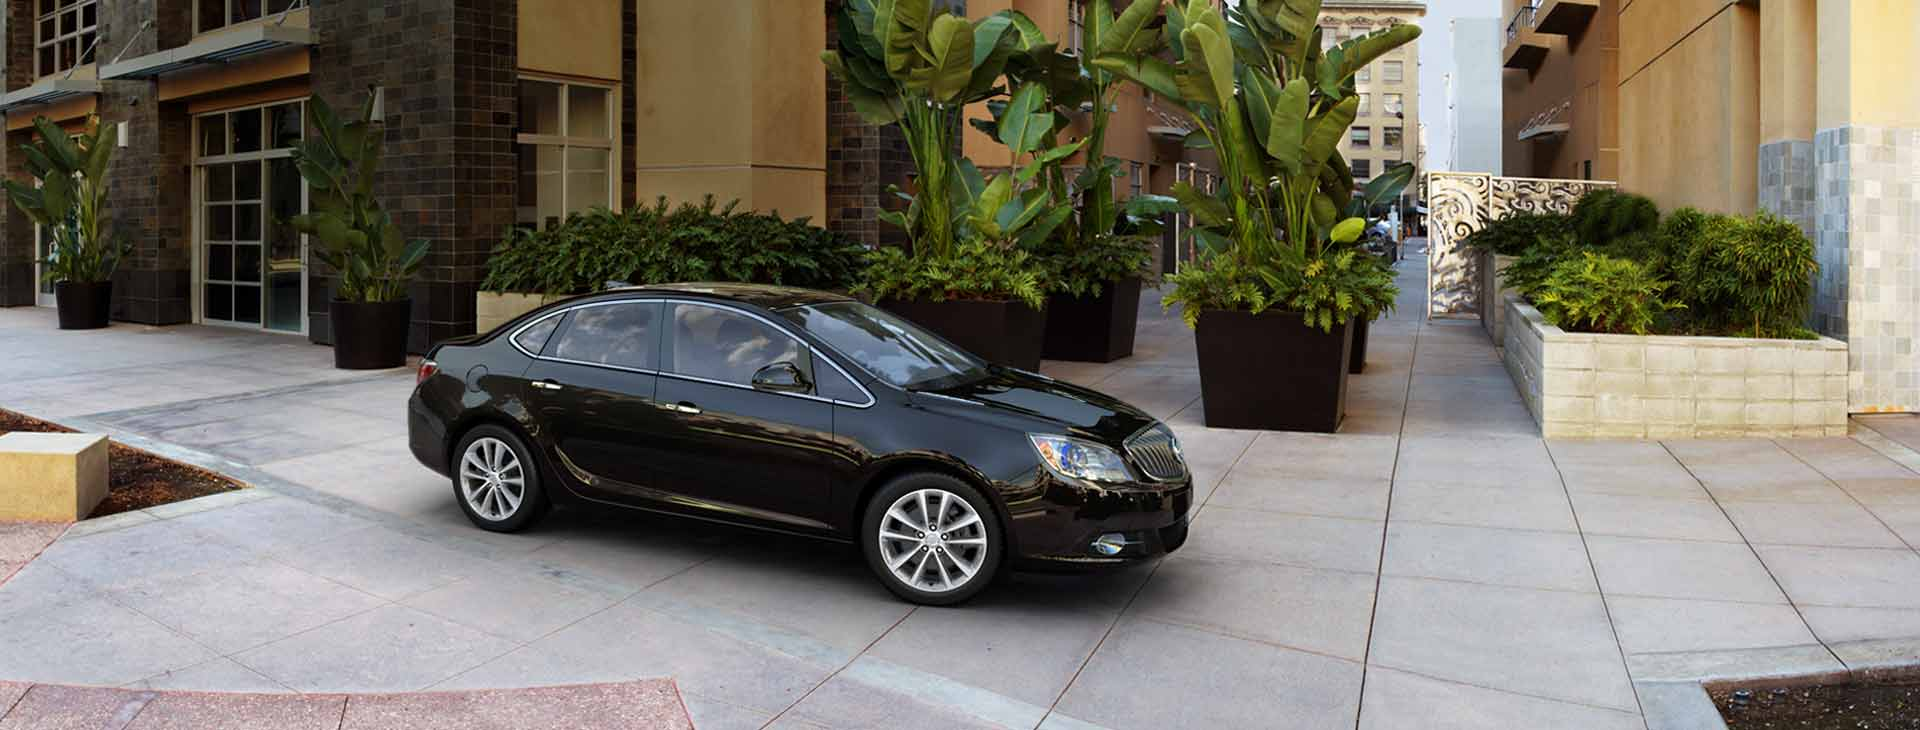 lafontaine ilovemarch watch encore special leases buick lease at youtube